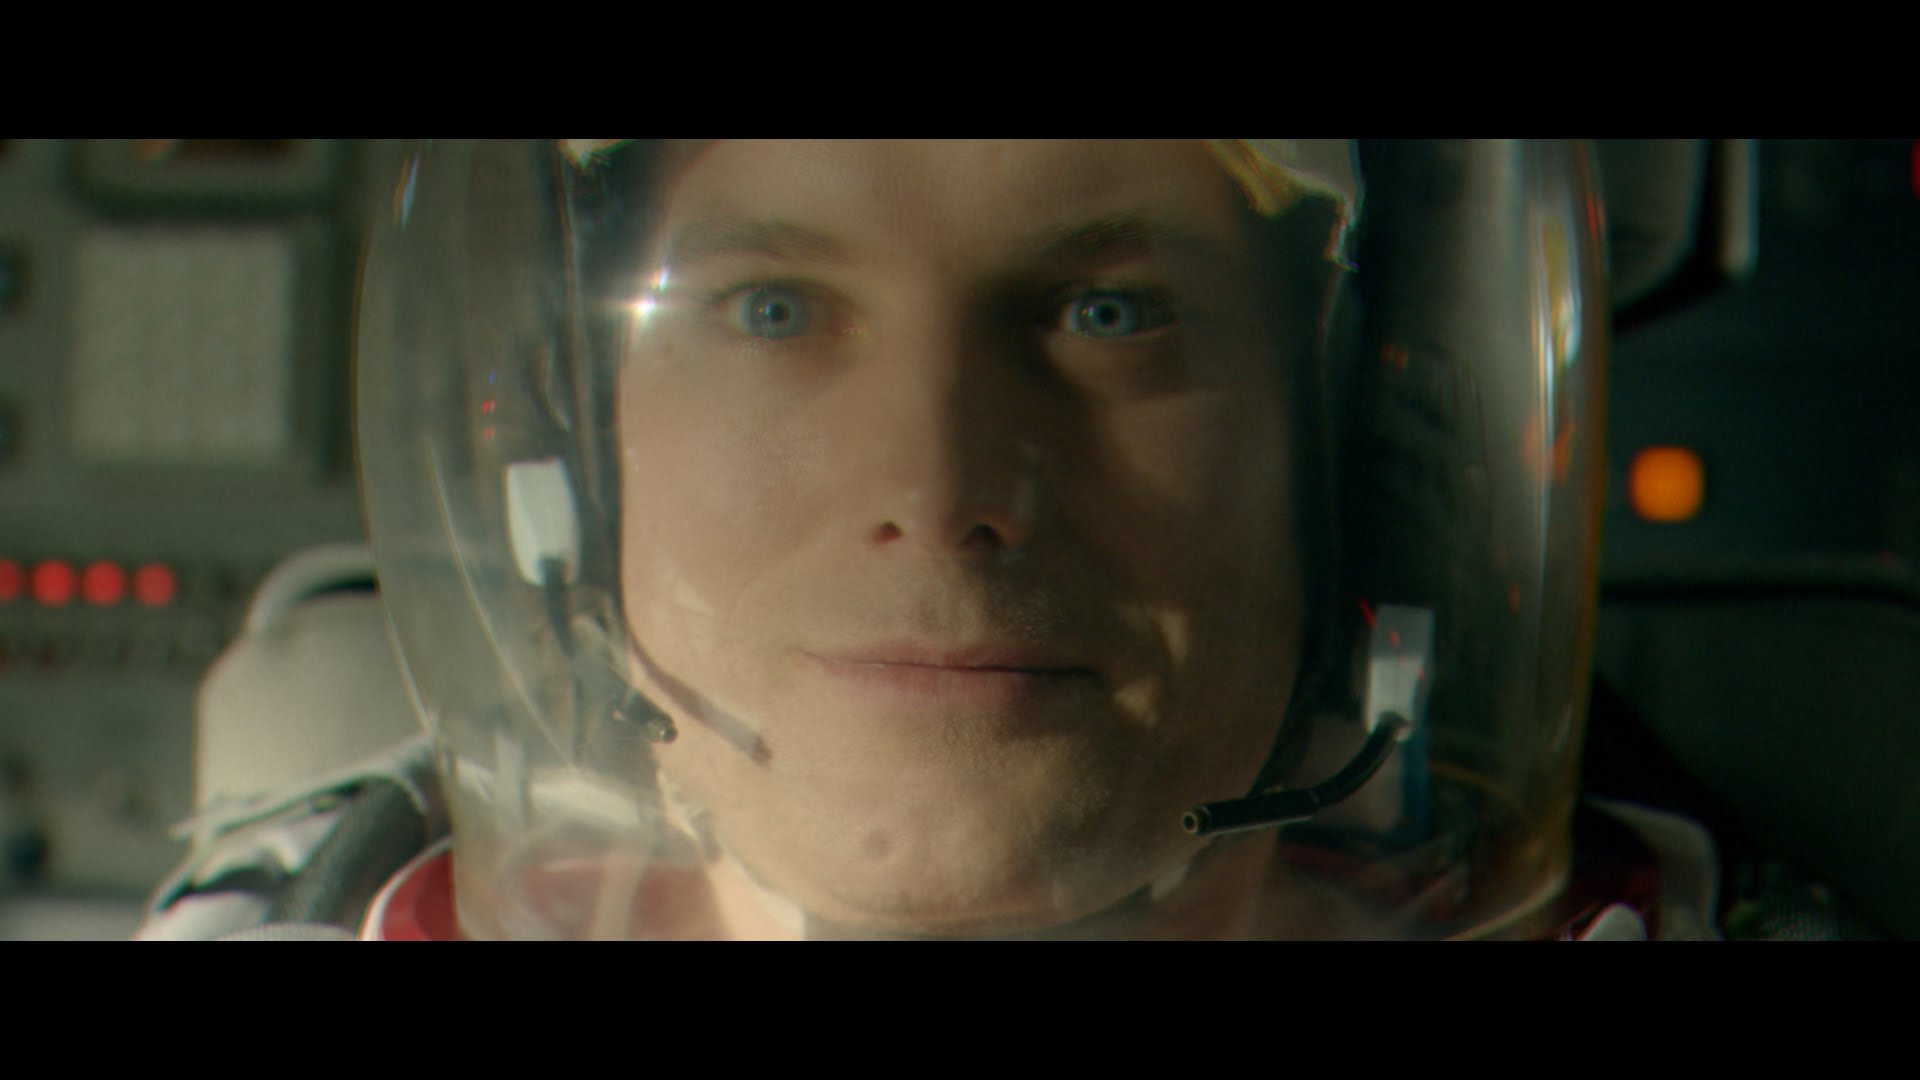 Audi R Reaches For The Moon To David Bowies Starman In Super - Audi r8 commercial